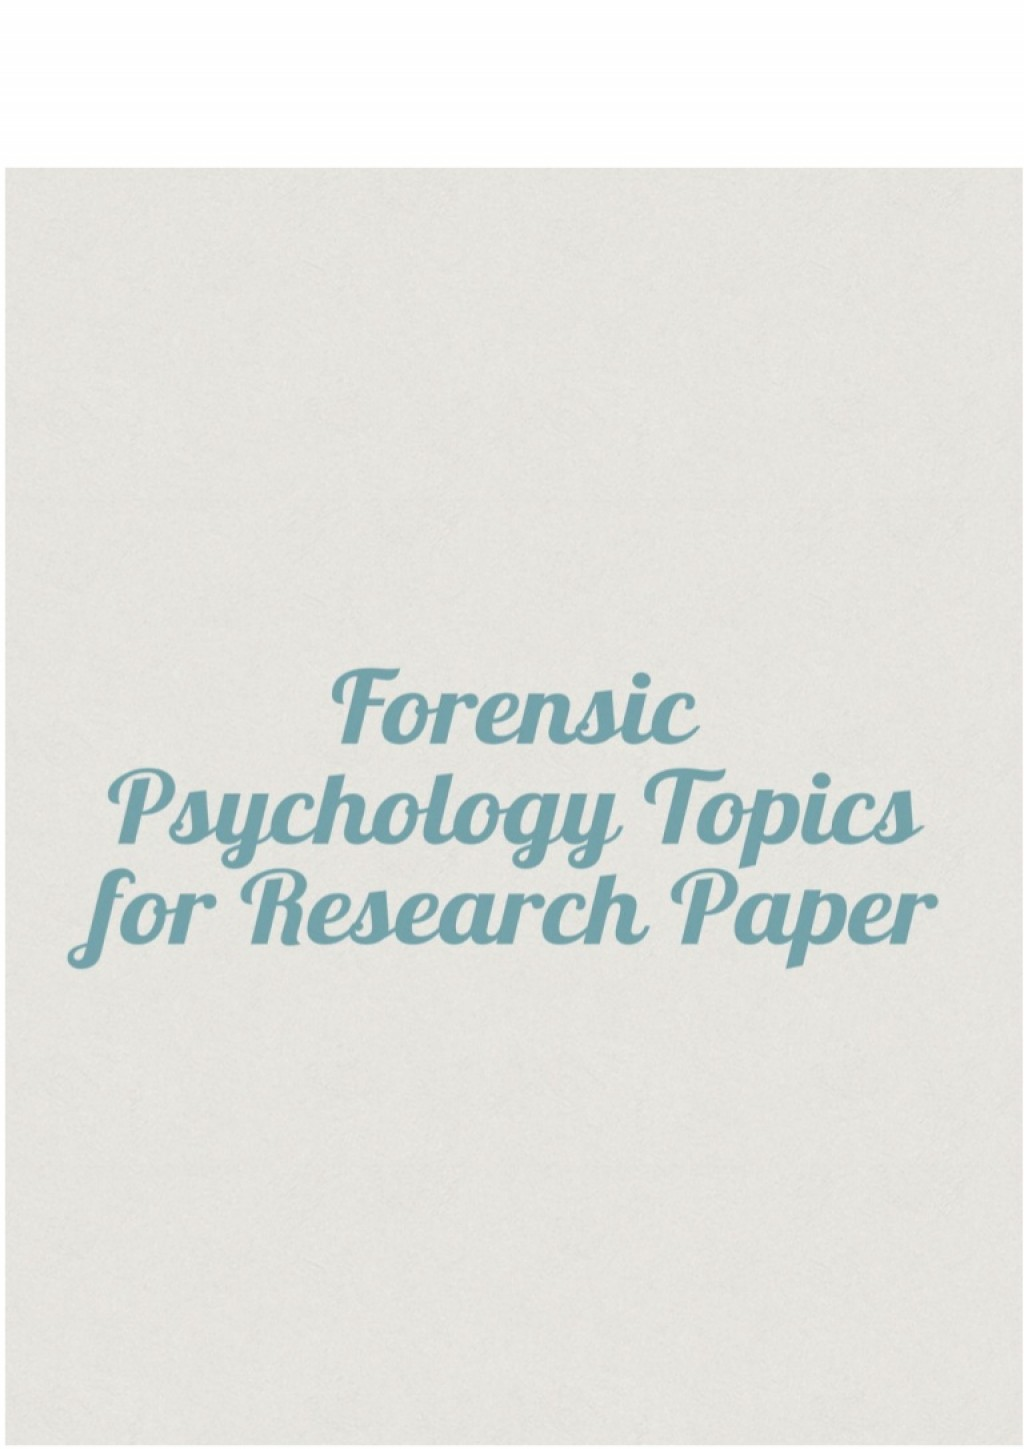 008 Psychology Topics For Research Paper Forensicpsychologytopicsforresearchpaper Thumbnail Wondrous Forensic Cultural Large